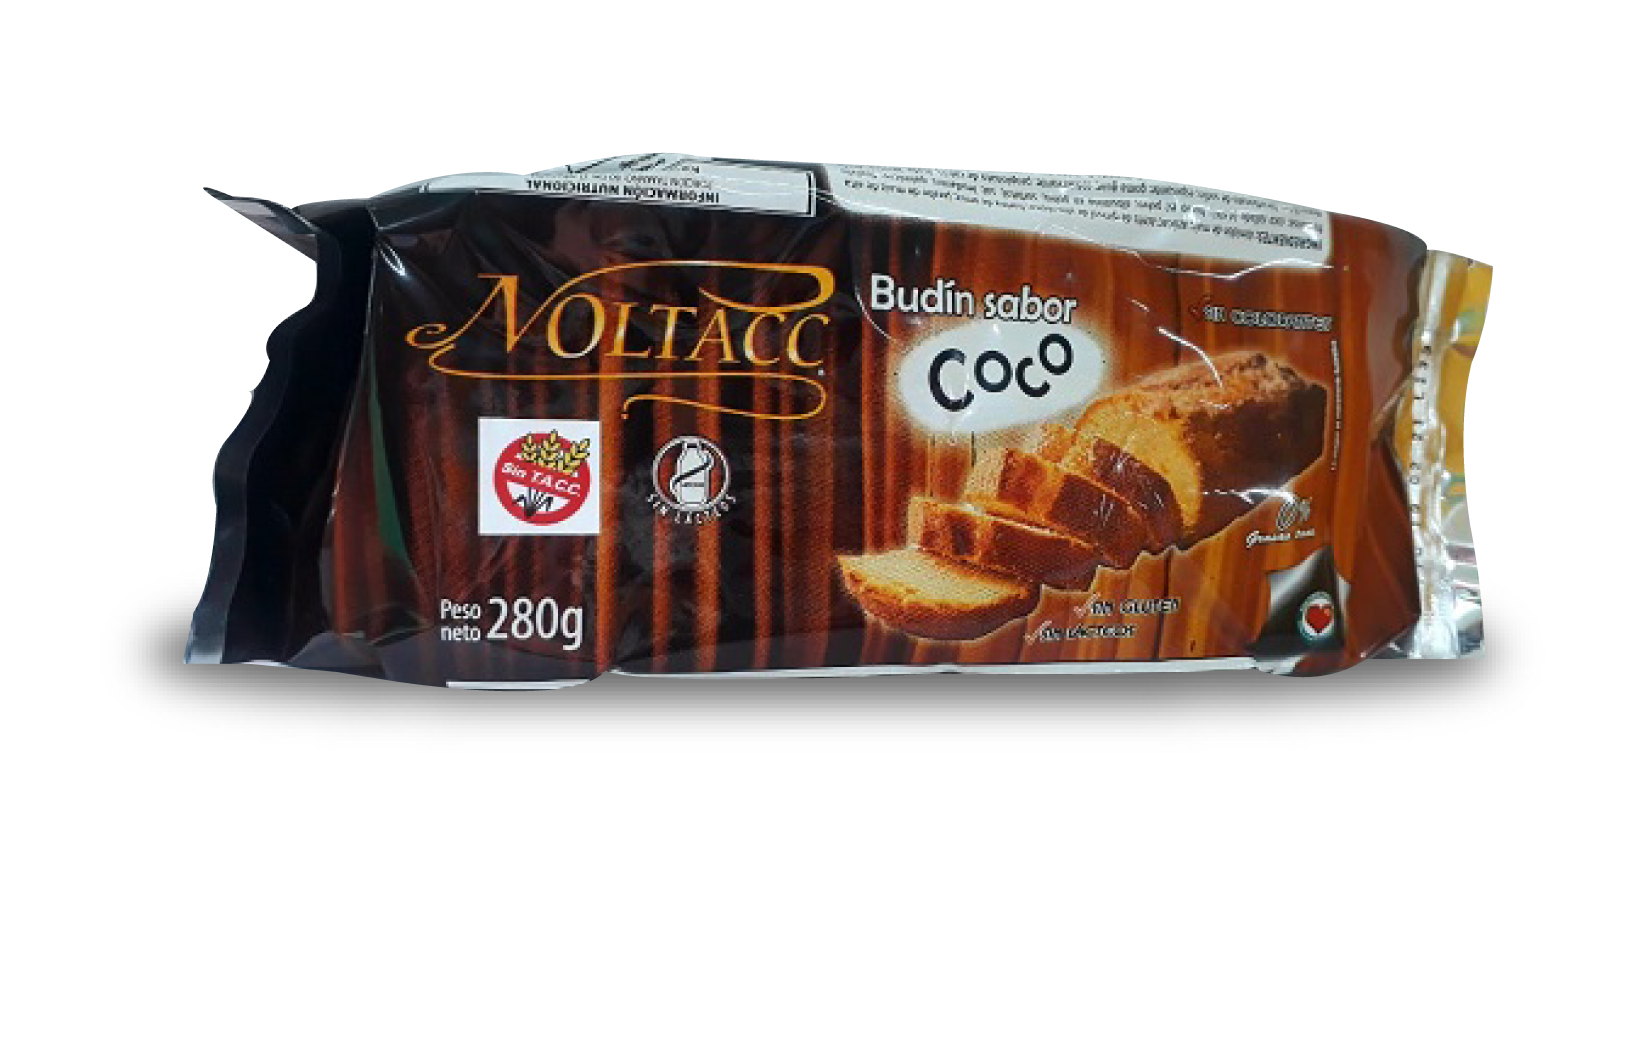 Budin sabor COCO 10 x 280 grs NOLTACC